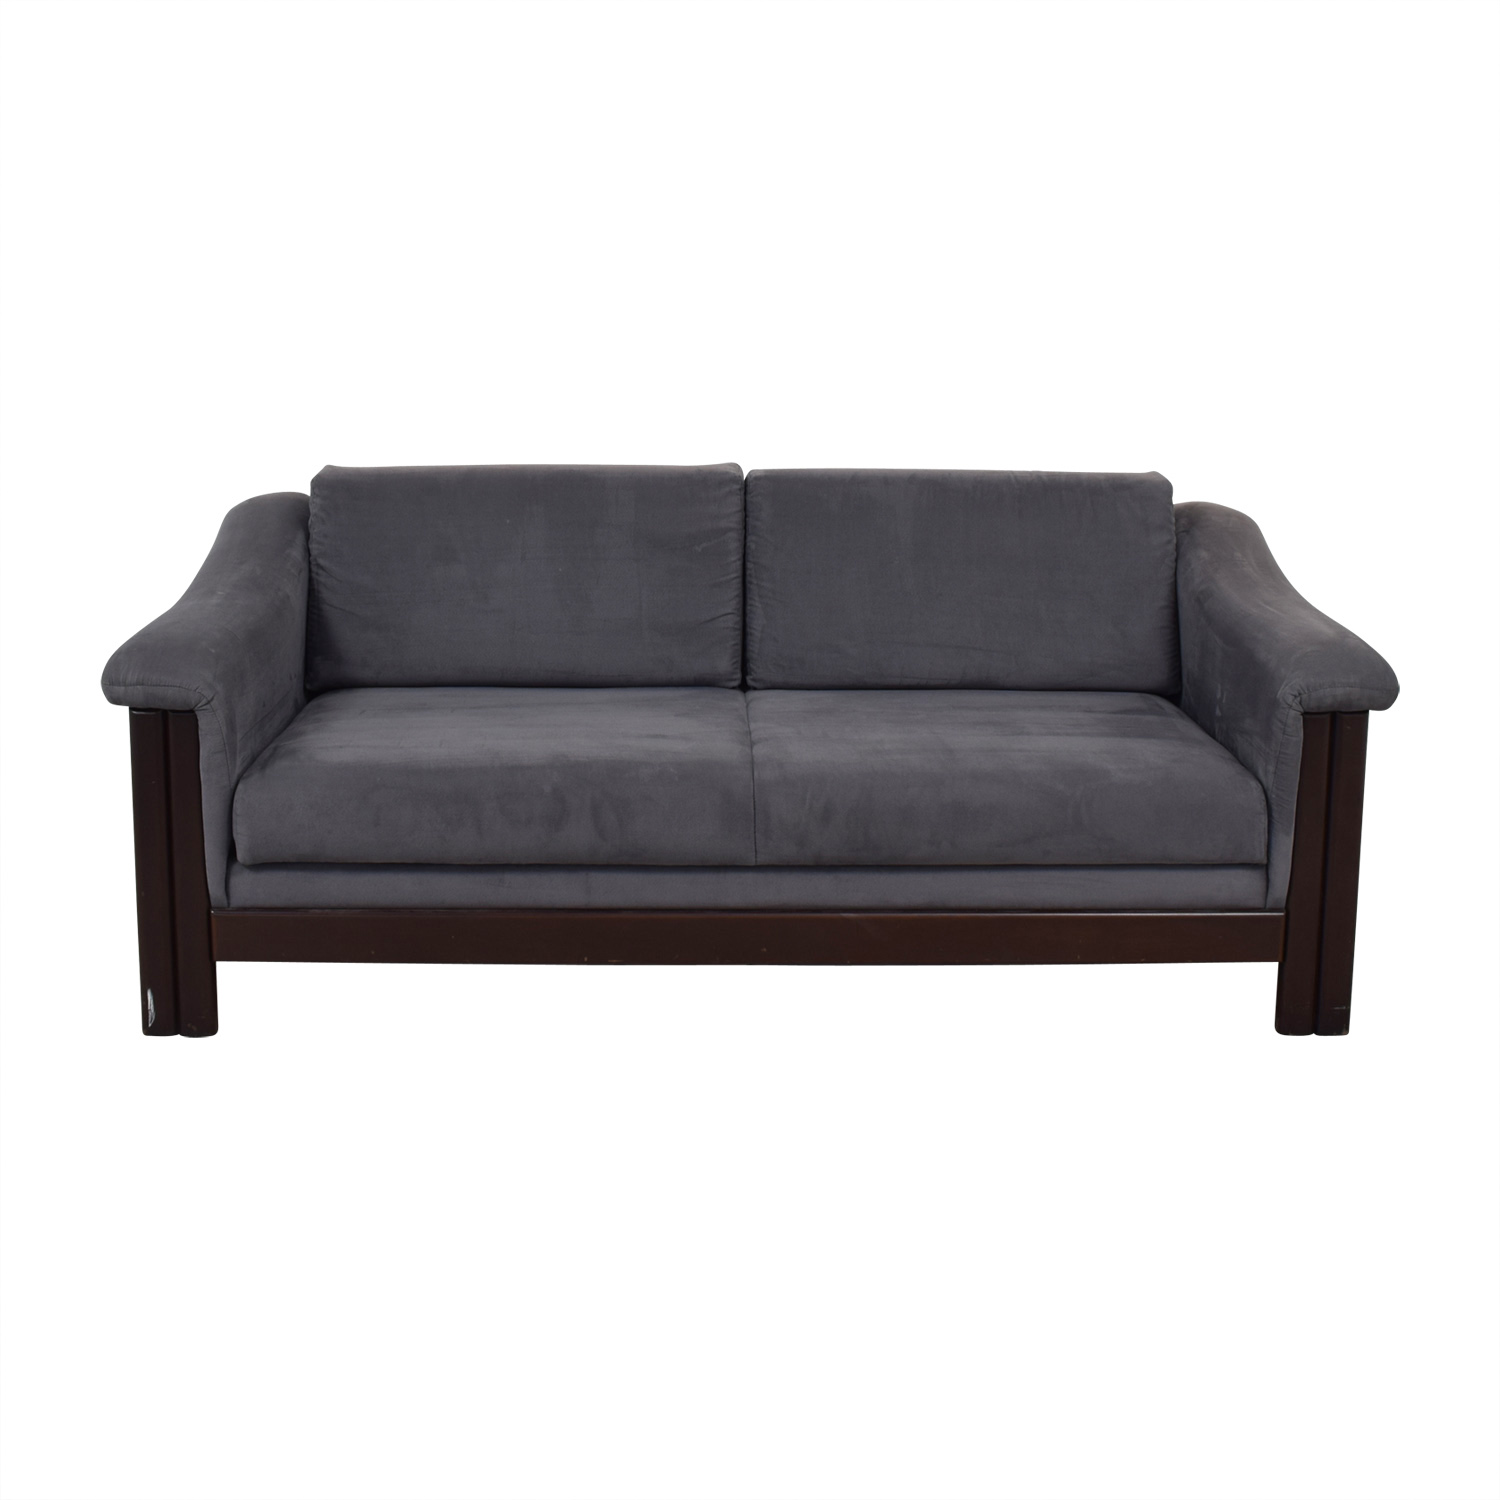 Charcoal Micro Suede Three-Cushion Sofa Bed dimensions